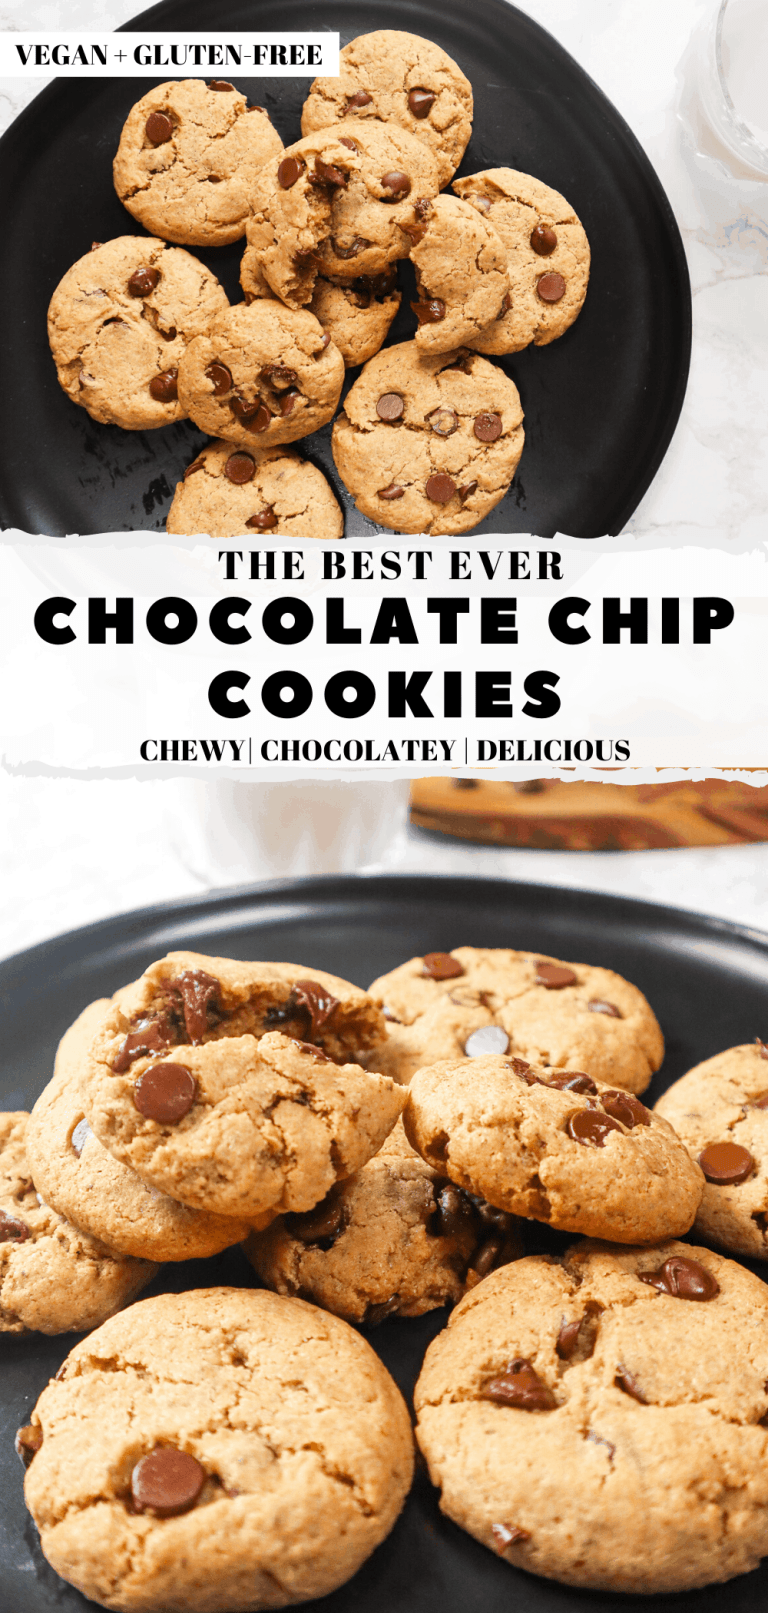 the best chocolate chip cookies vegan and gluten-free